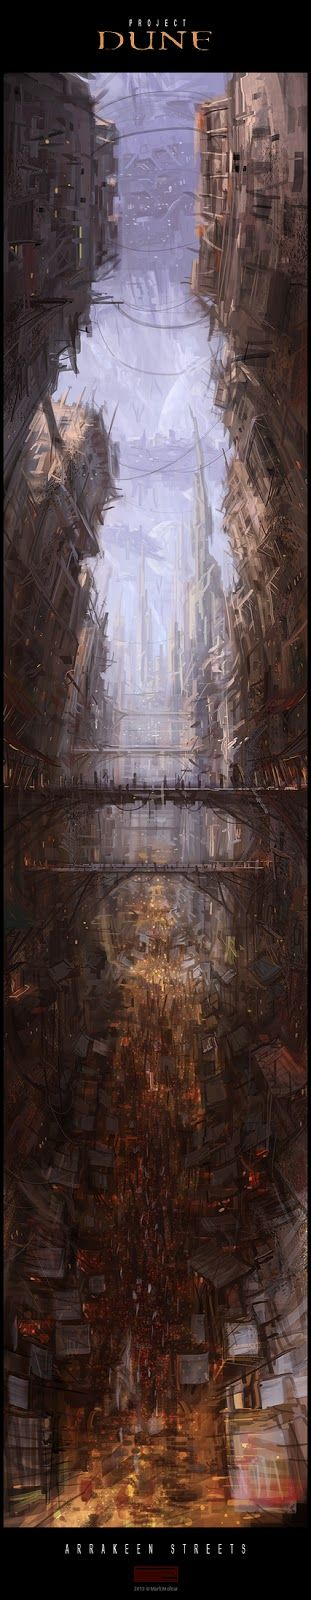 Mark Molnar - Sketchblog of Concept Art and Illustration Works: Project Dune: Arrakeen Streets (wip) ~ amazing how as you scroll down, the view pans down. Awesome